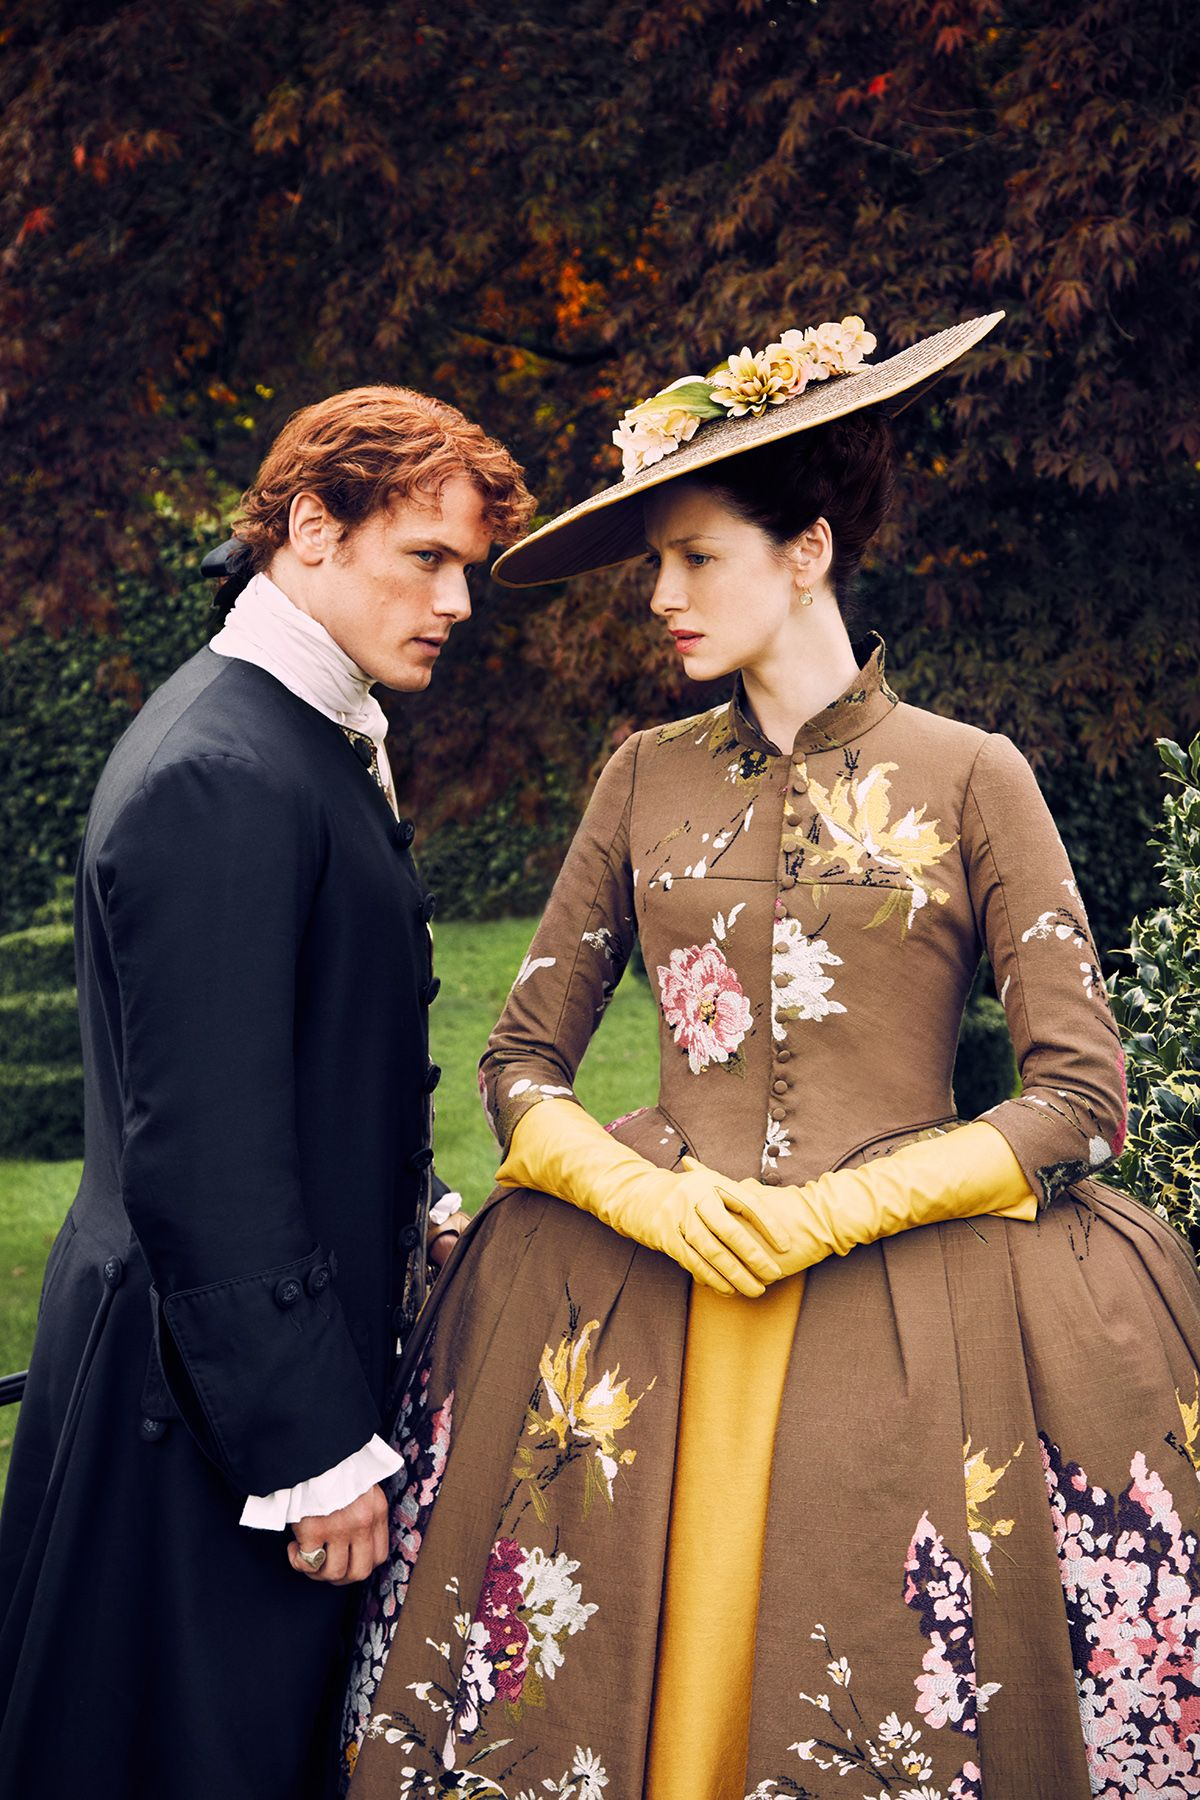 outlander series claire and jamie dating